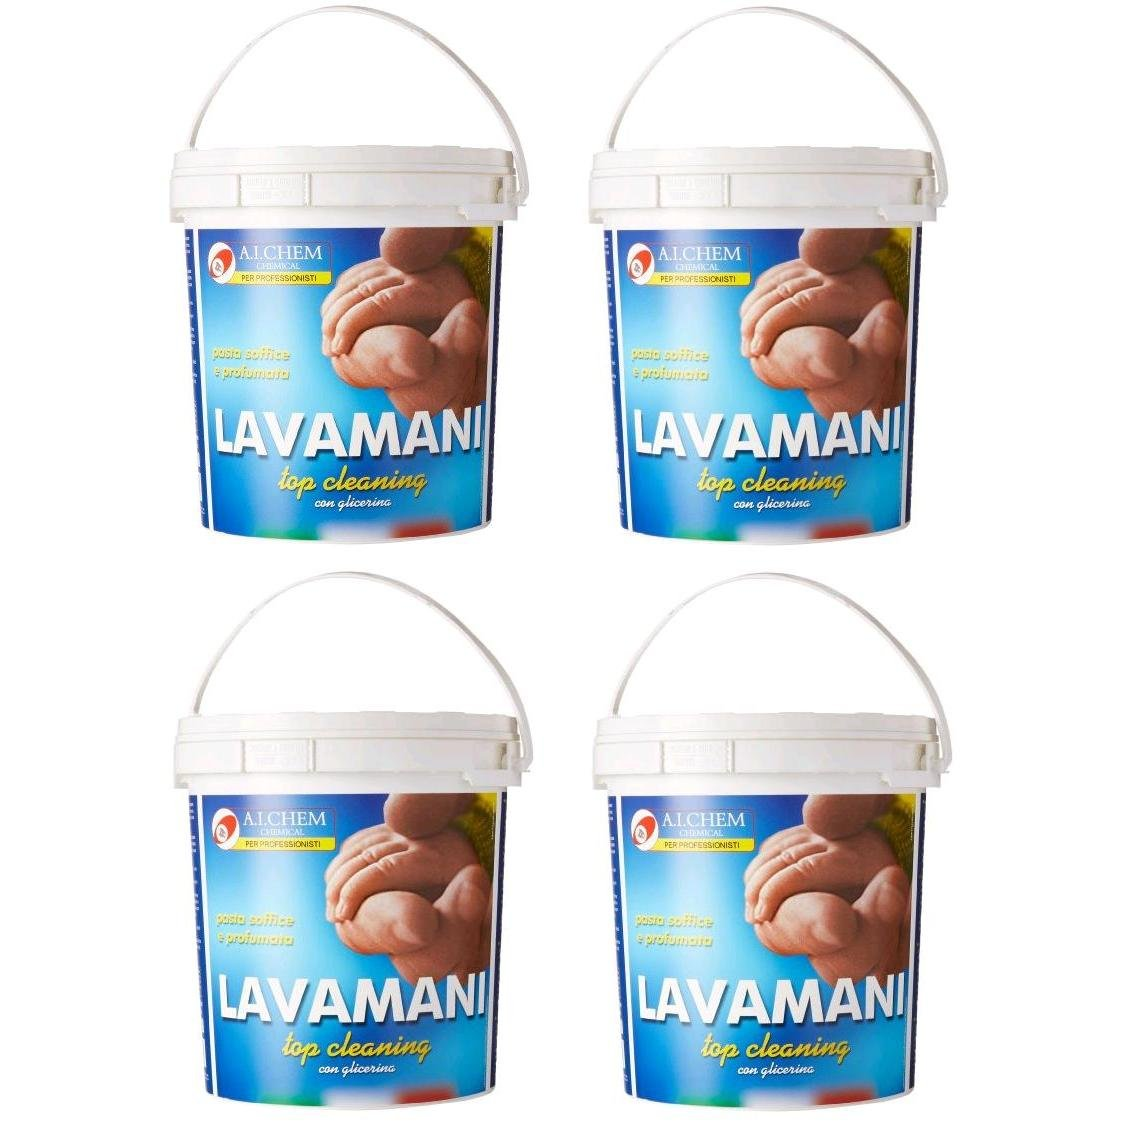 Pasta Lavamani 4000ml Hand Cleaner Paste Made in Italy 4 PACK